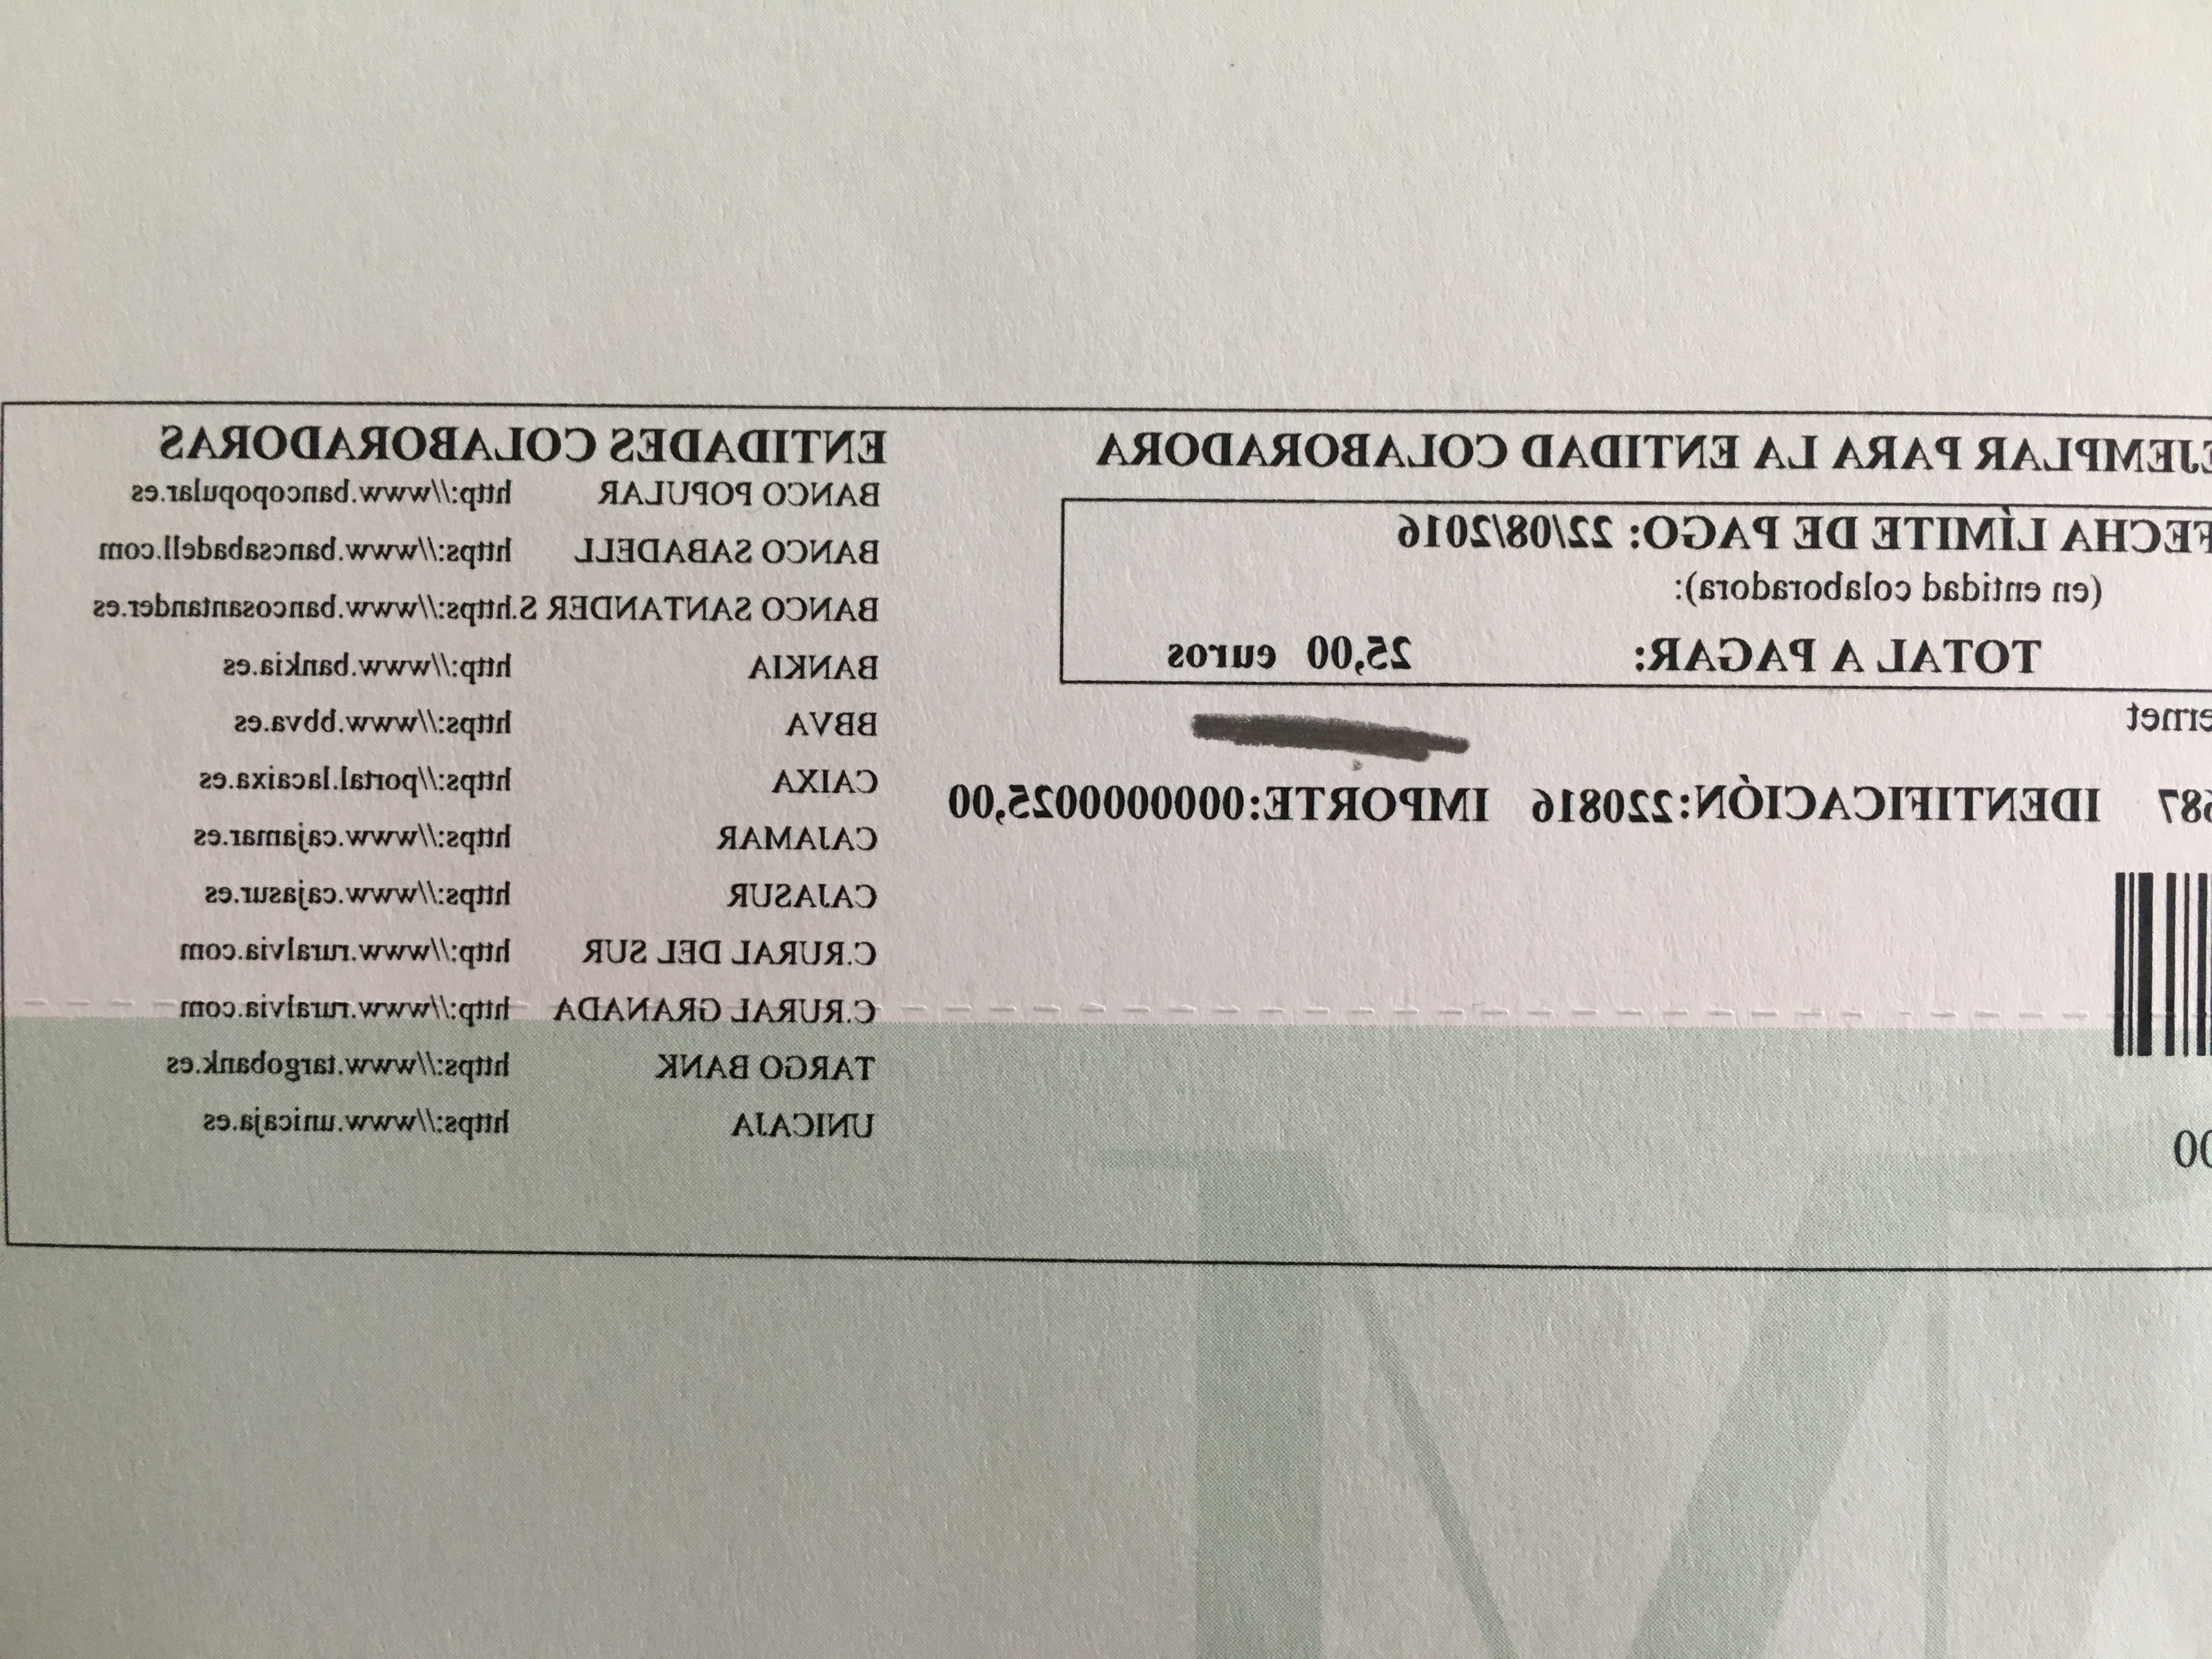 Banco Sabadell Marbella Qwdq How to Pay A Parking Ticket In Marbella Archives Marbella6